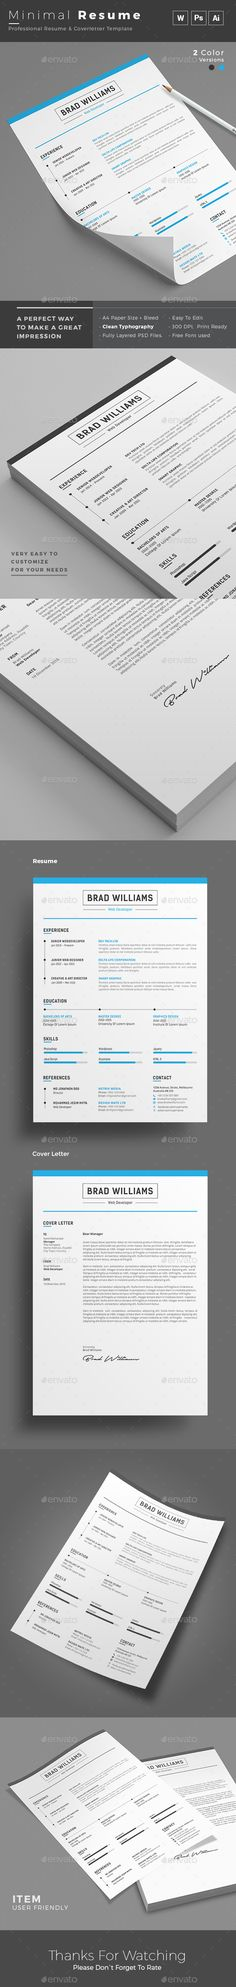 MS WORD CV Template Resume Template + Cover Letter PSD + AI - downloadable resume templates word